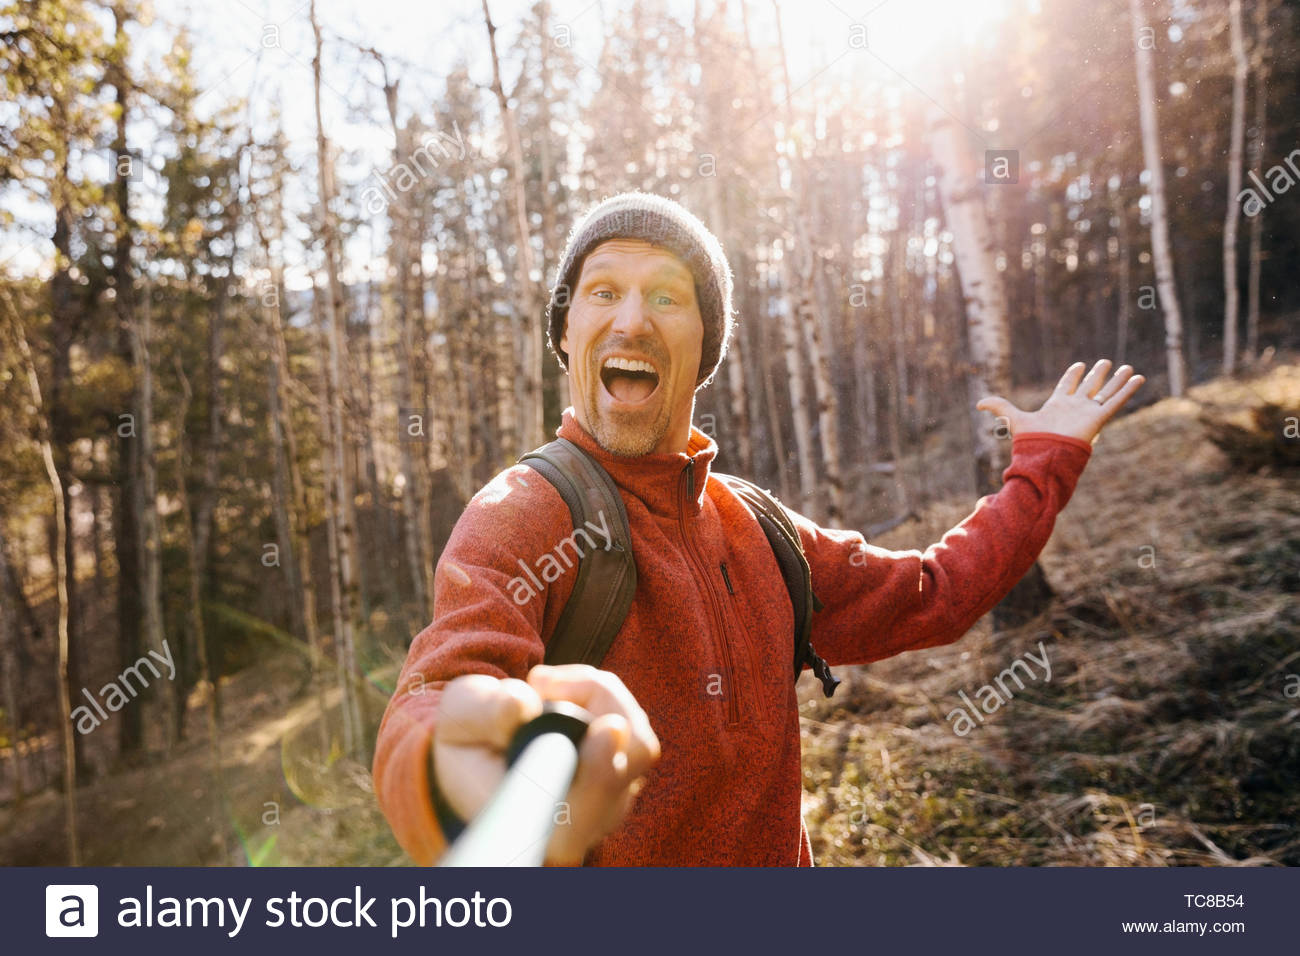 Point of view man hiking, taking selfie with selfie stick in sunny woods - Stock Image